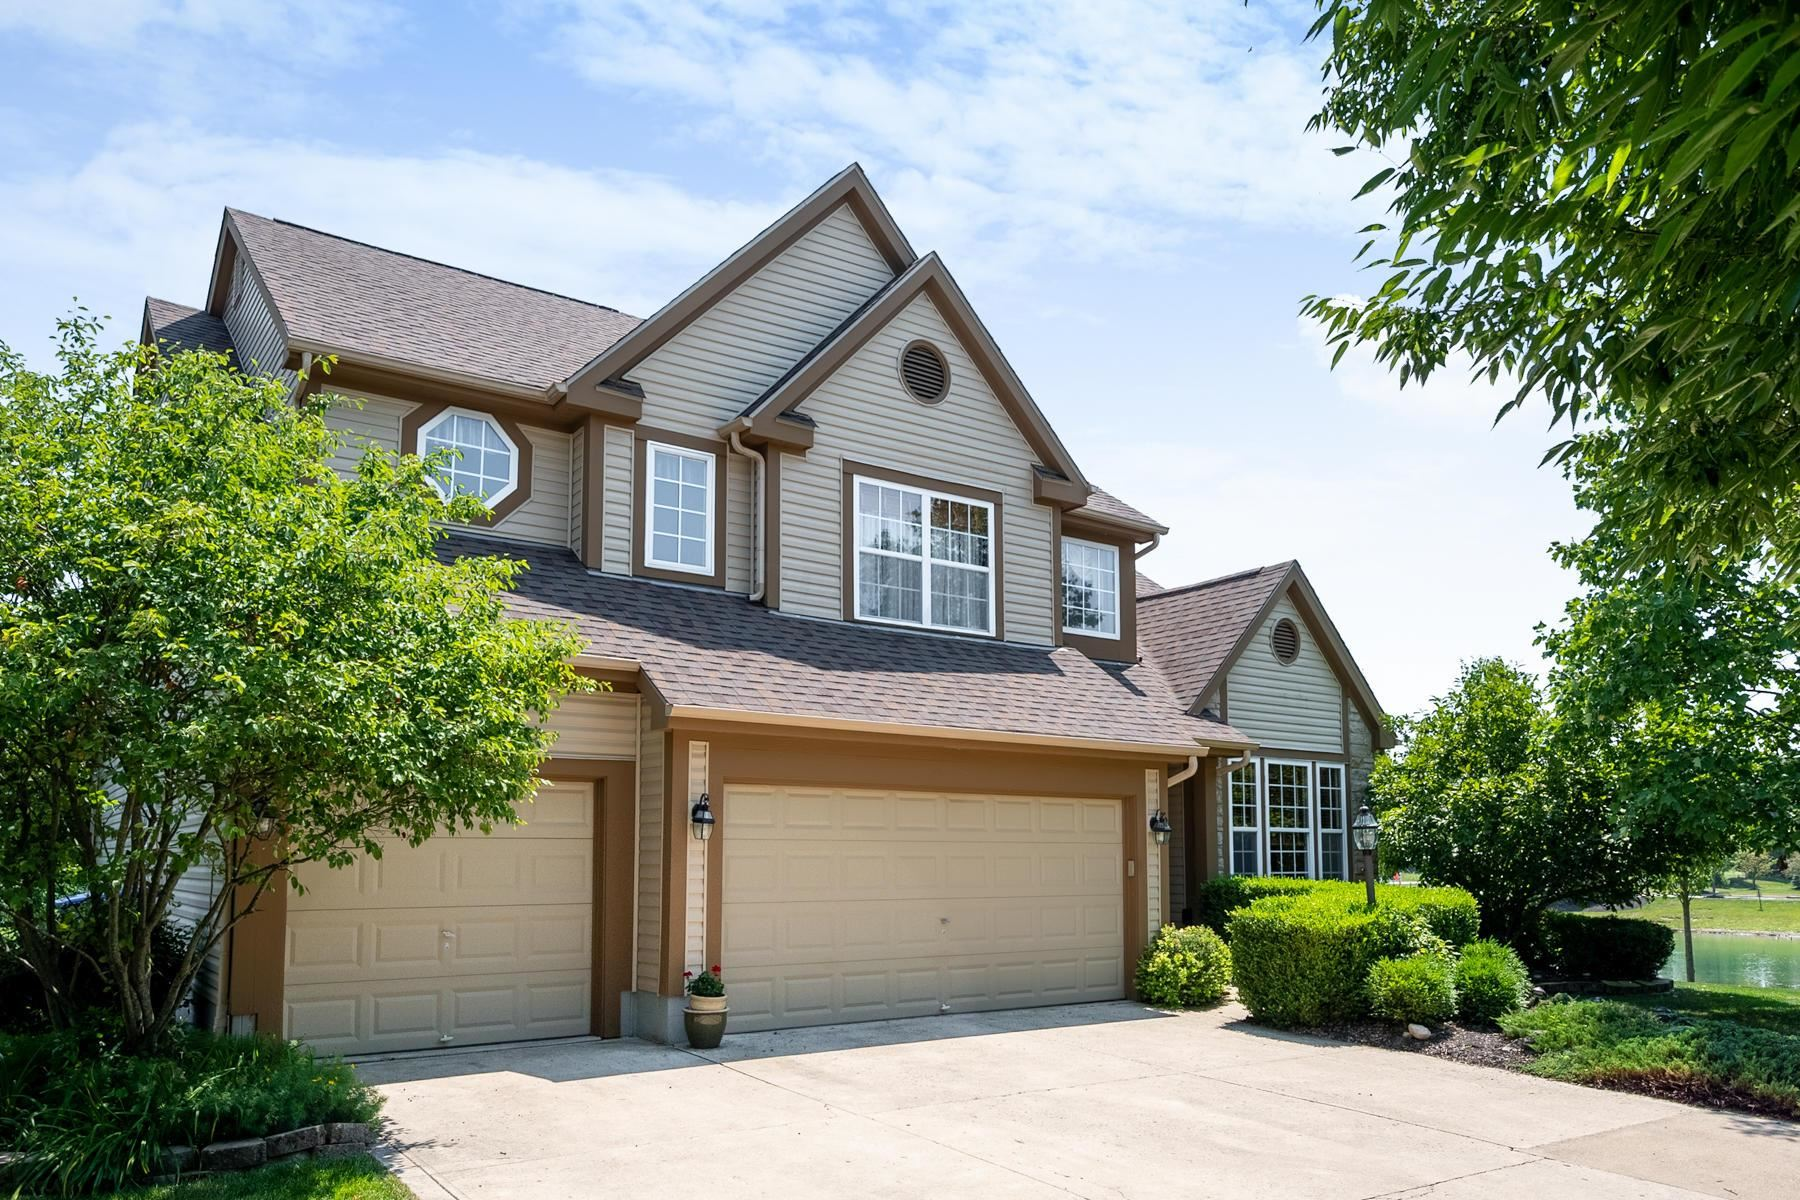 Photo of 20 Madison Court, Delaware, OH 43015 (MLS # 221026688)